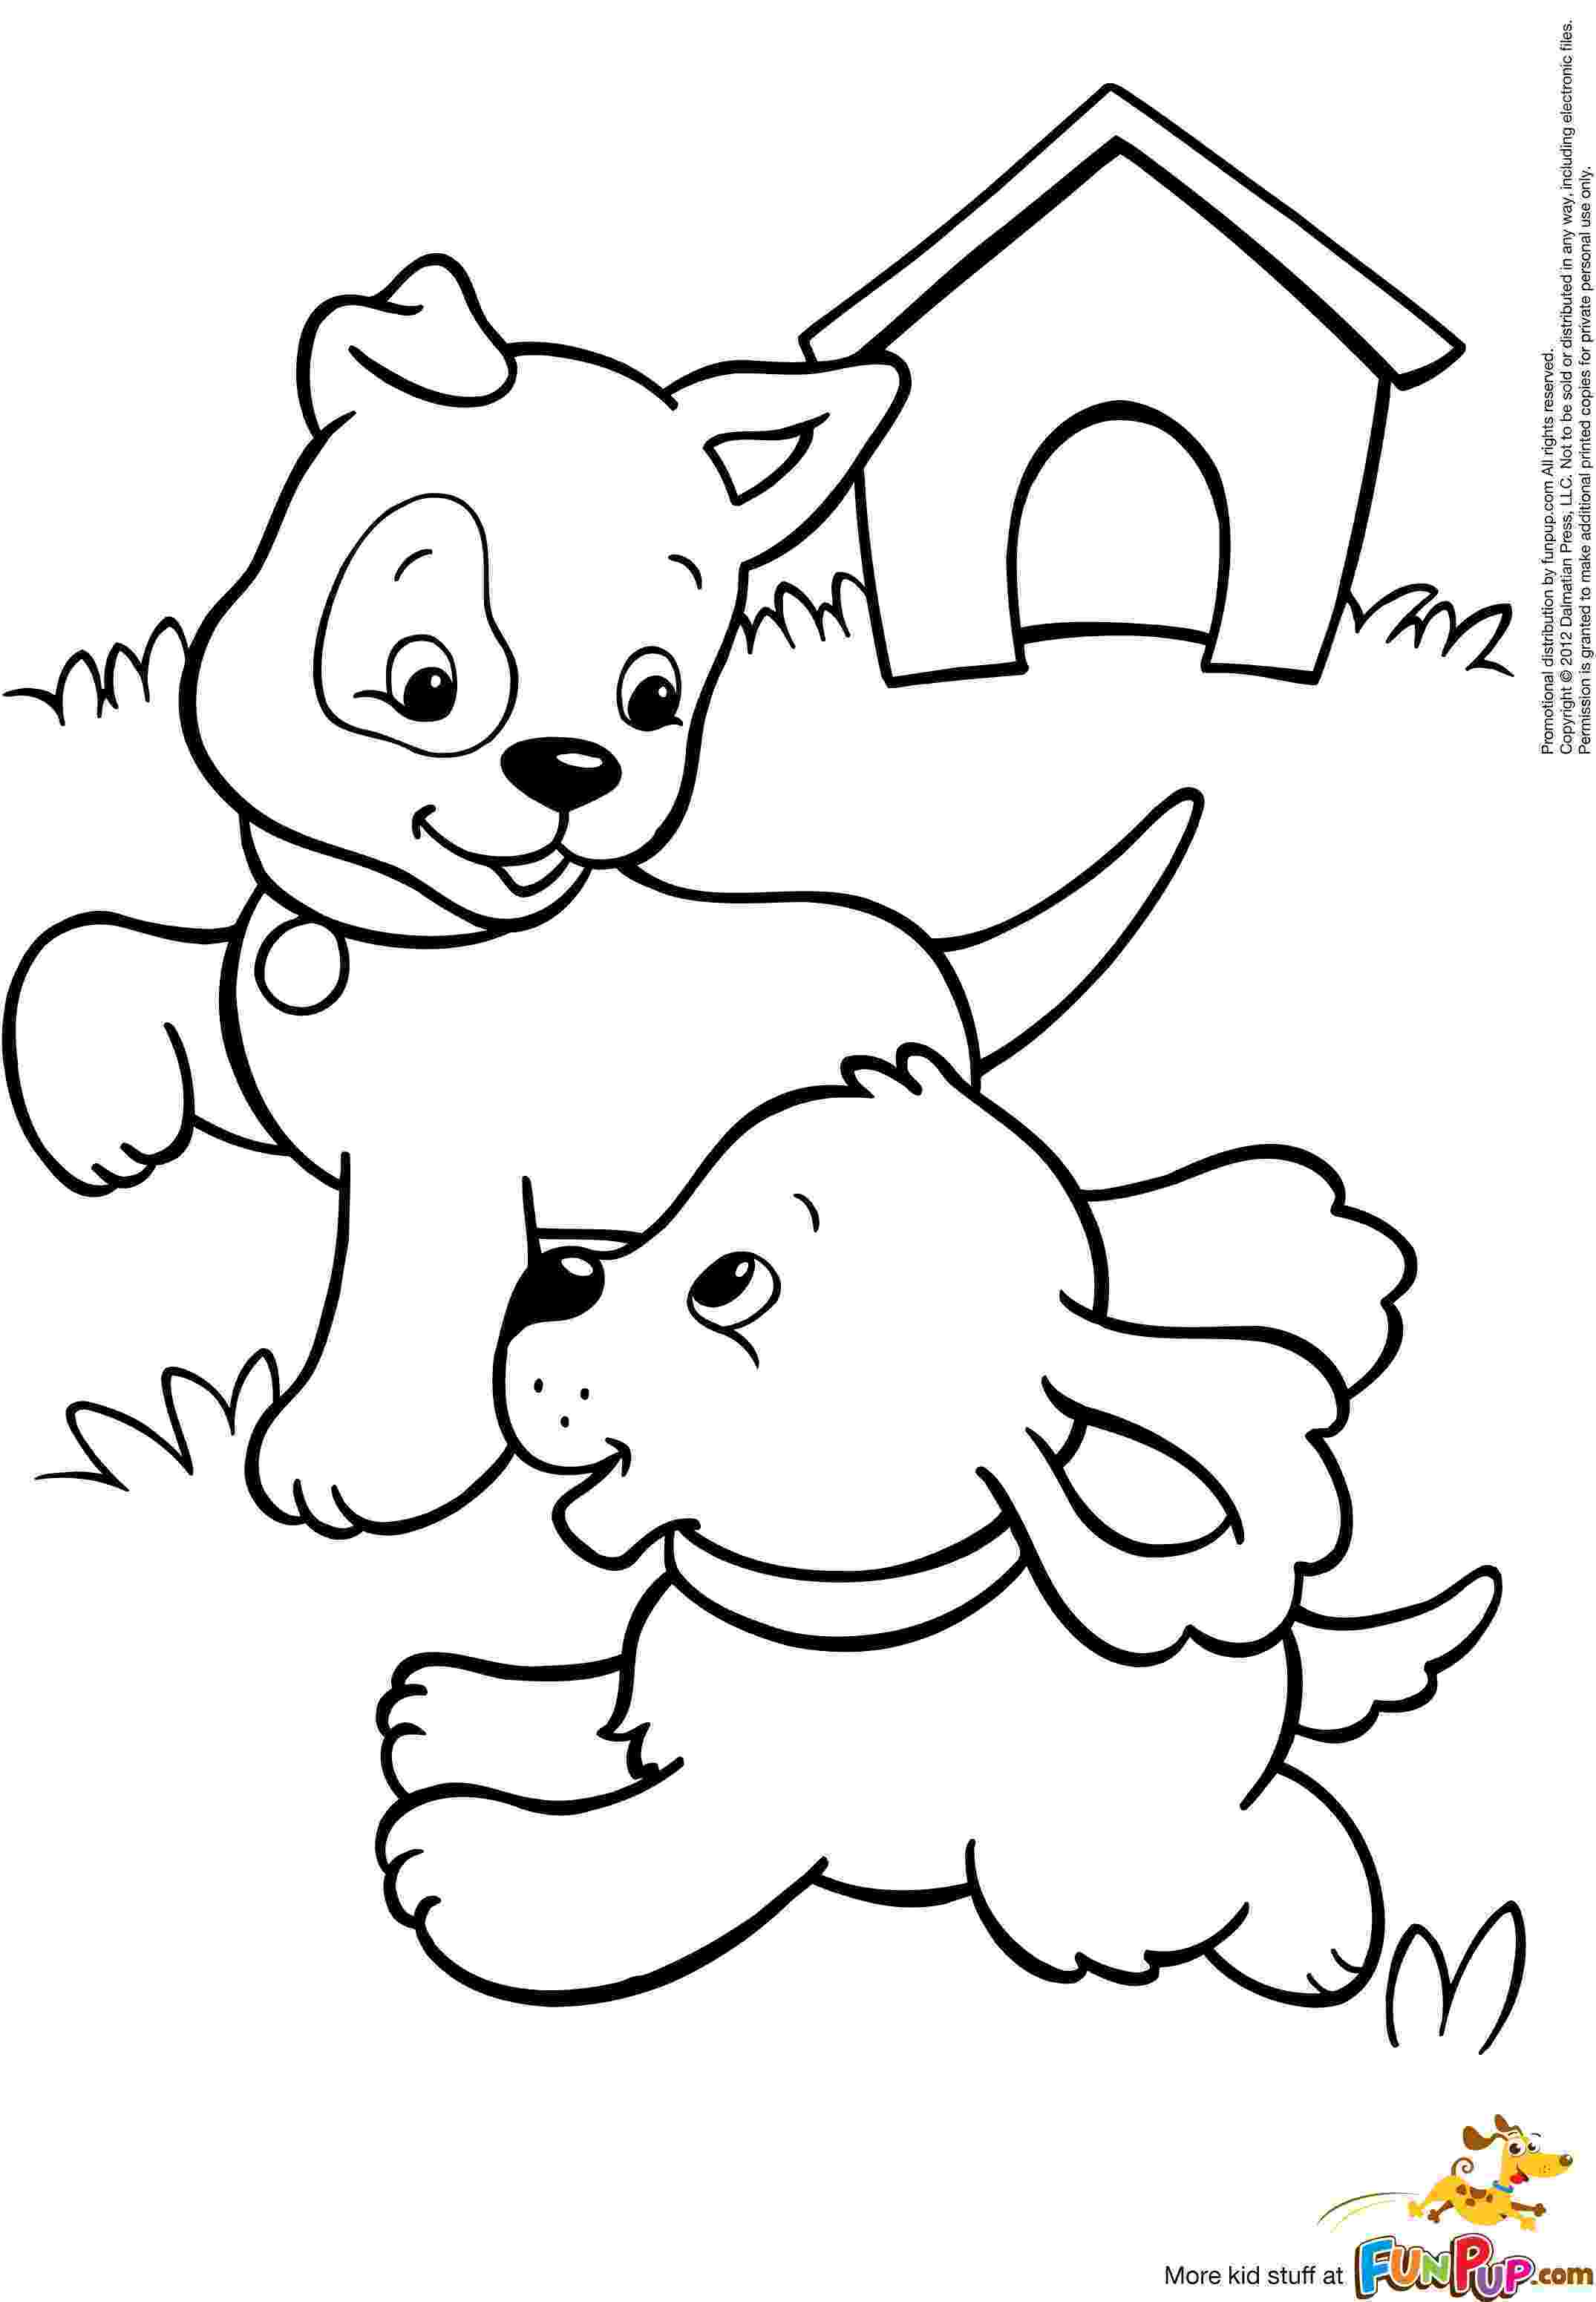 colouring pages puppies cute puppy coloring pages for kids free printable colouring puppies pages